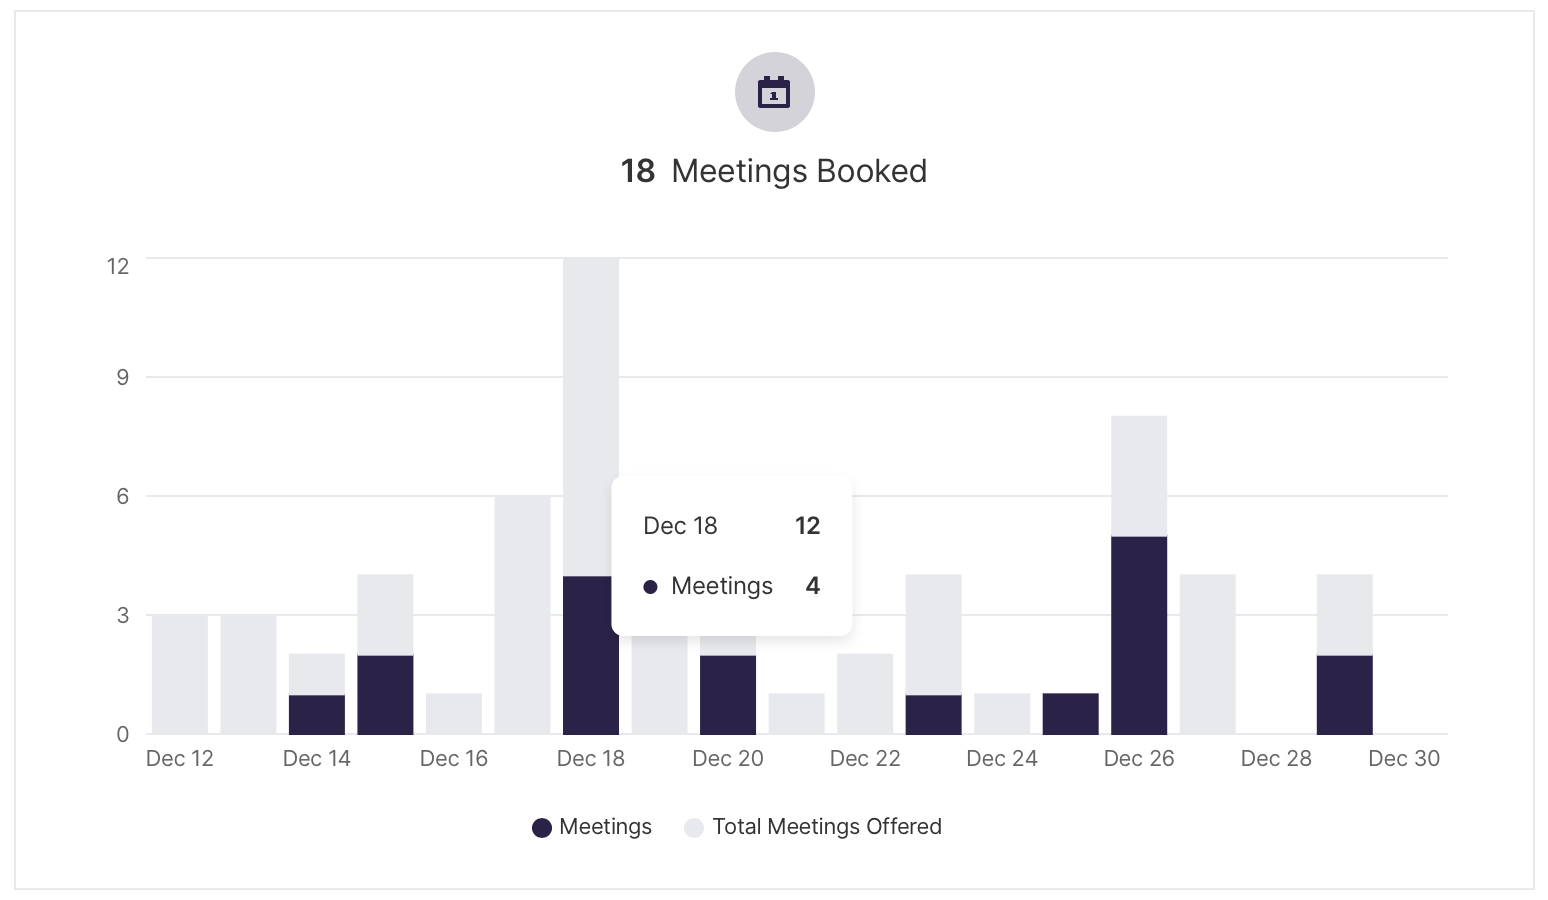 Bar chart displaying meetings and total meetings offered over time